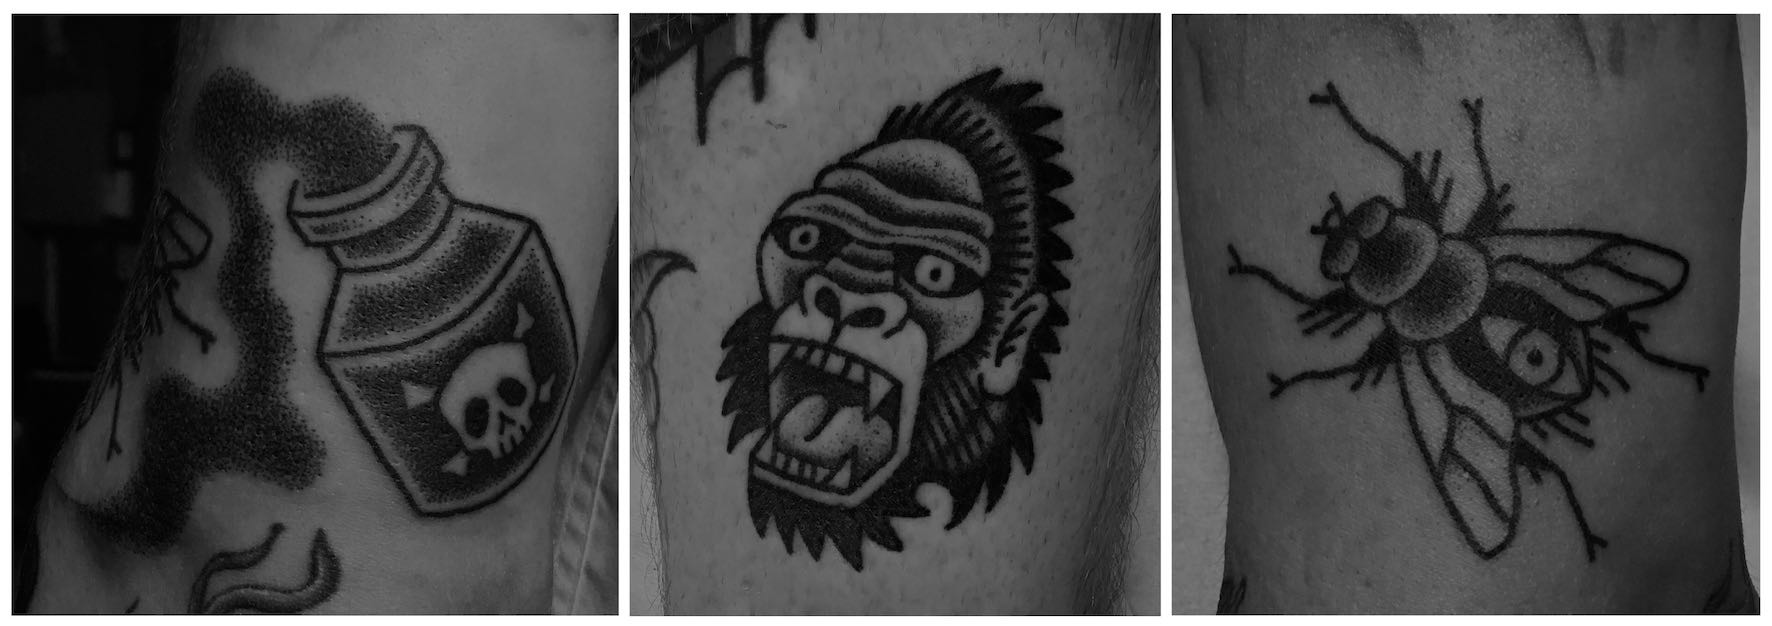 A selection of tattoos done by Tarzan